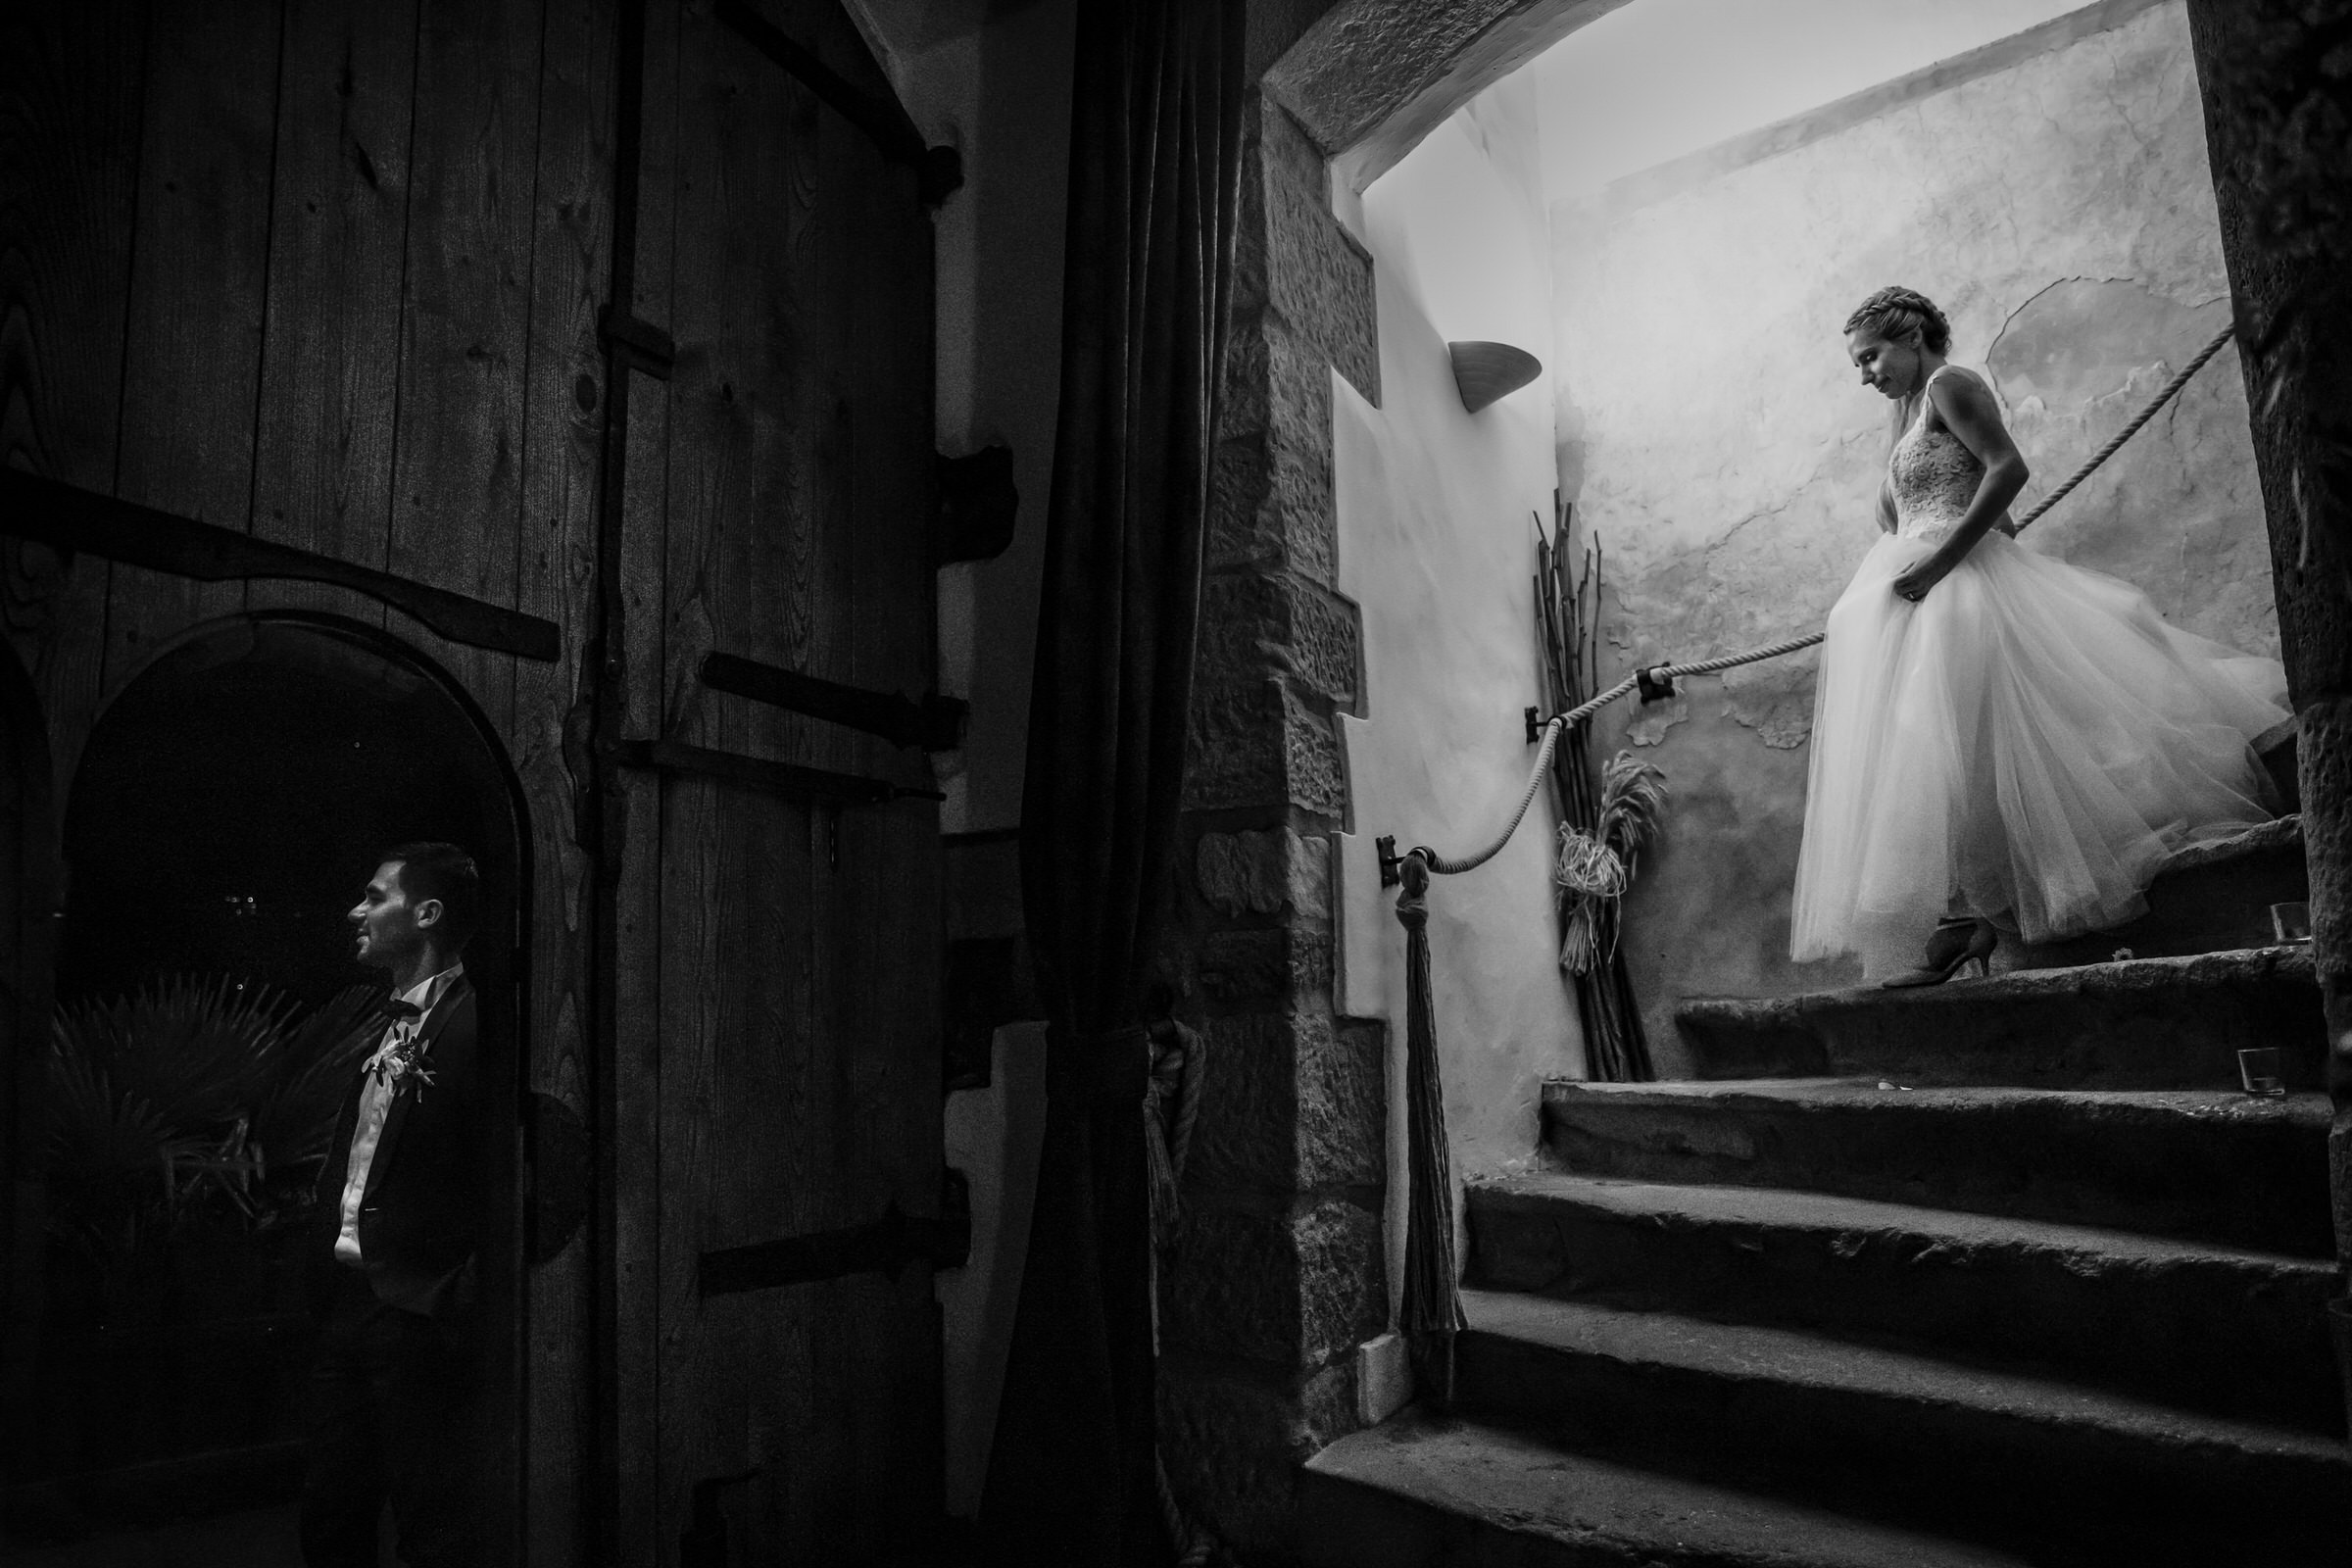 Bride descending stairs to groom - photo by Luca + Marta Gallizio Photography